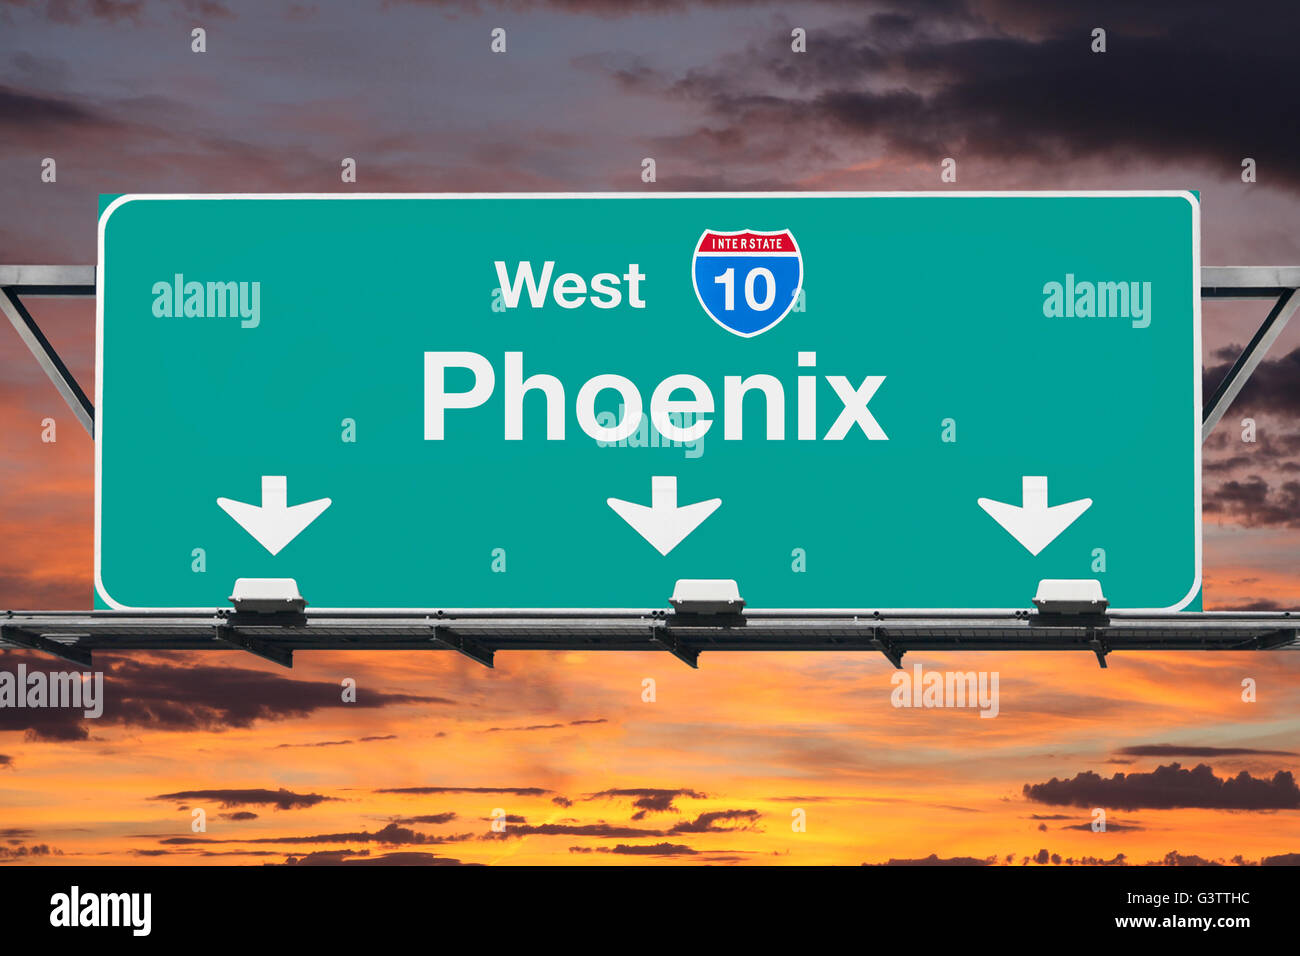 Phoenix Interstate 10 west highway sign with sunrise sky. - Stock Image